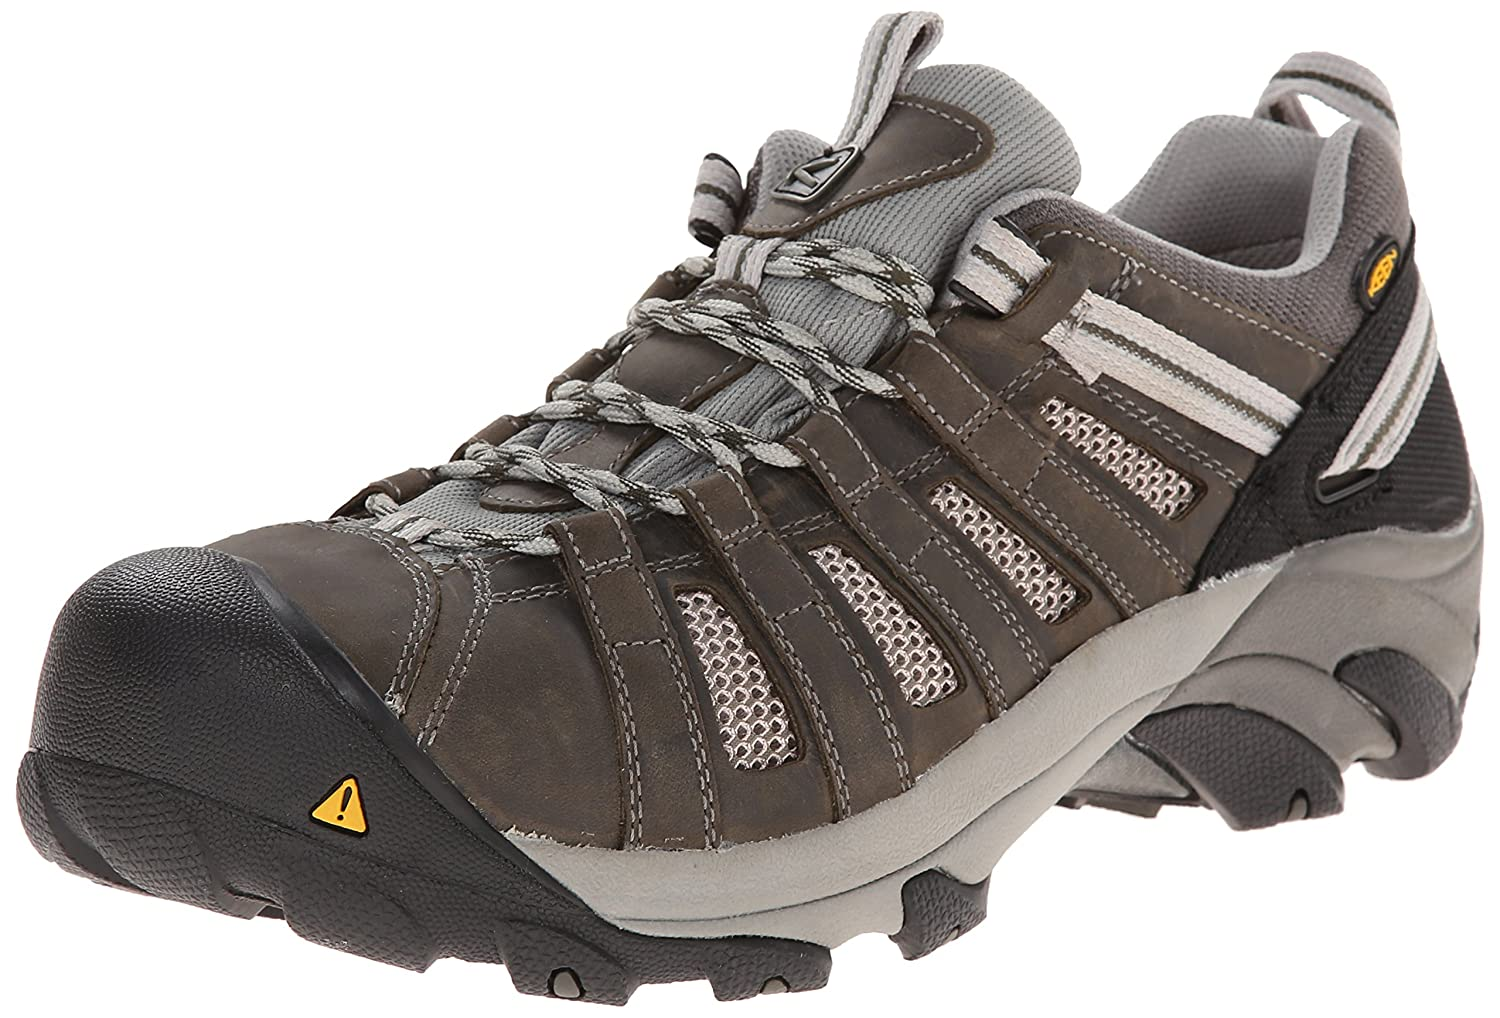 Keen Utility メンズ B00MXEICVA 10 mens_us|Gargoyle/Forest Night Gargoyle/Forest Night 10 mens_us